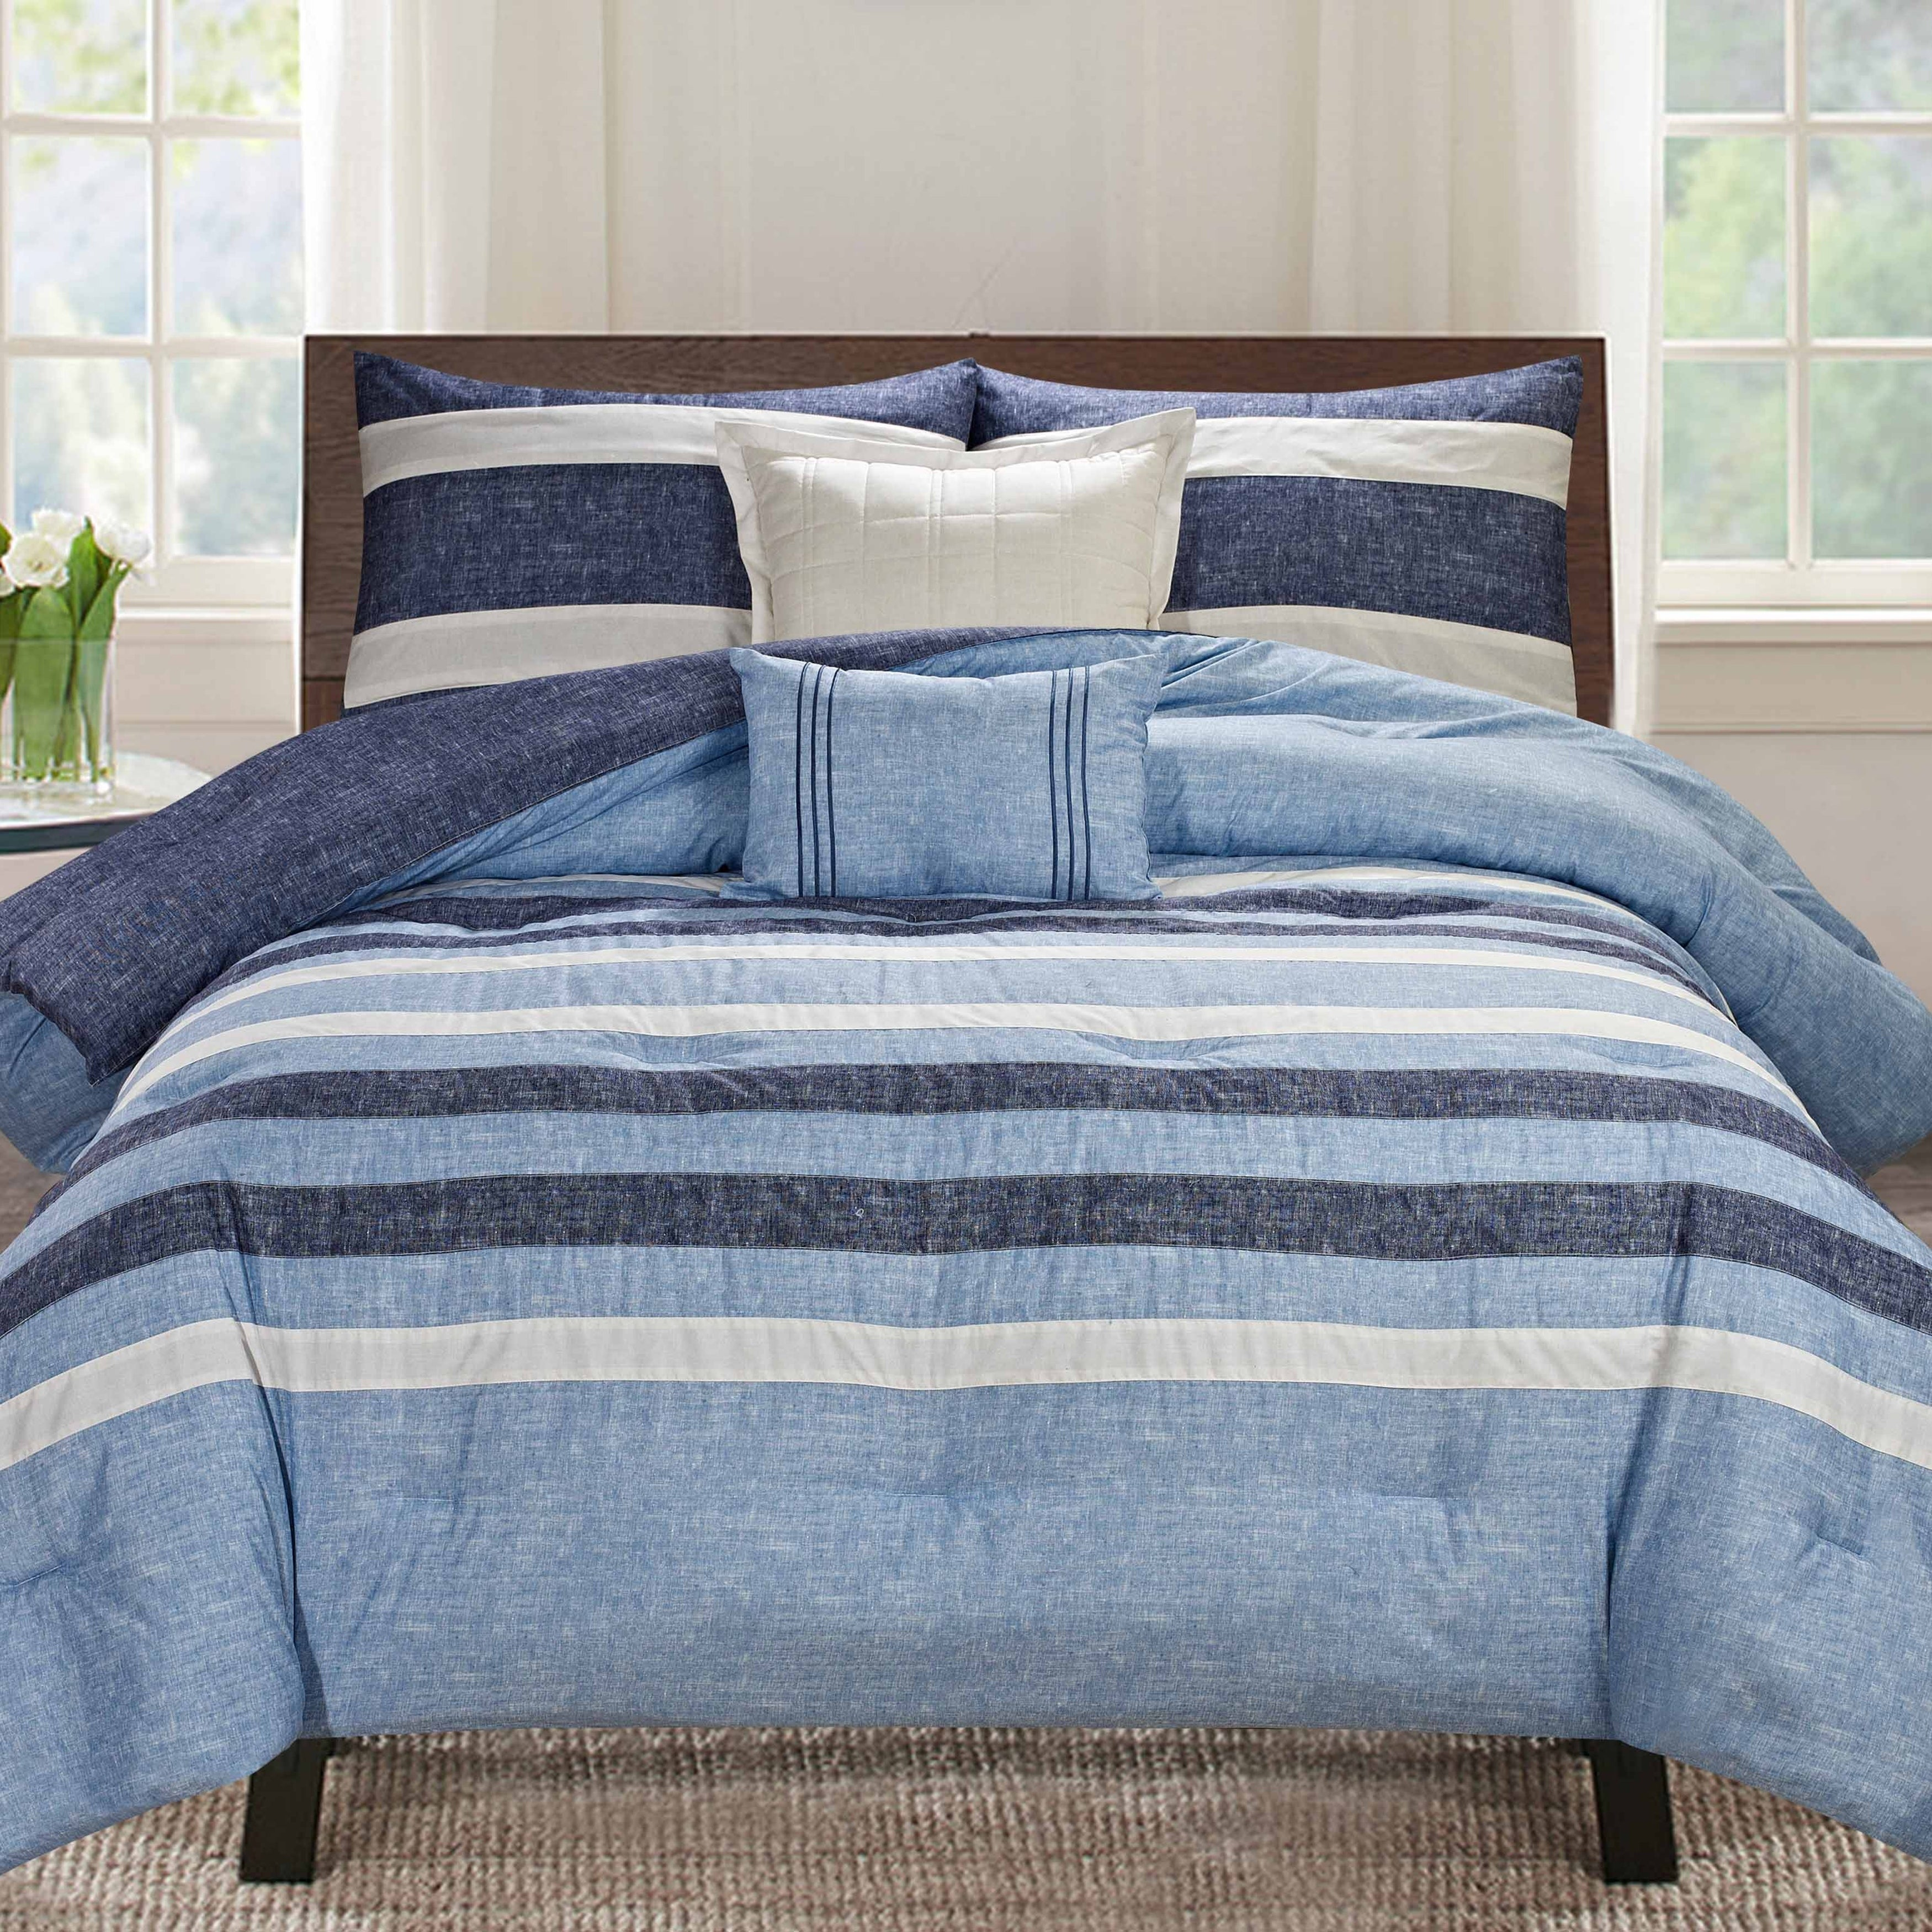 madison overstock bedding bedspread product com oversized bed park sarah chenille cotton set white bath